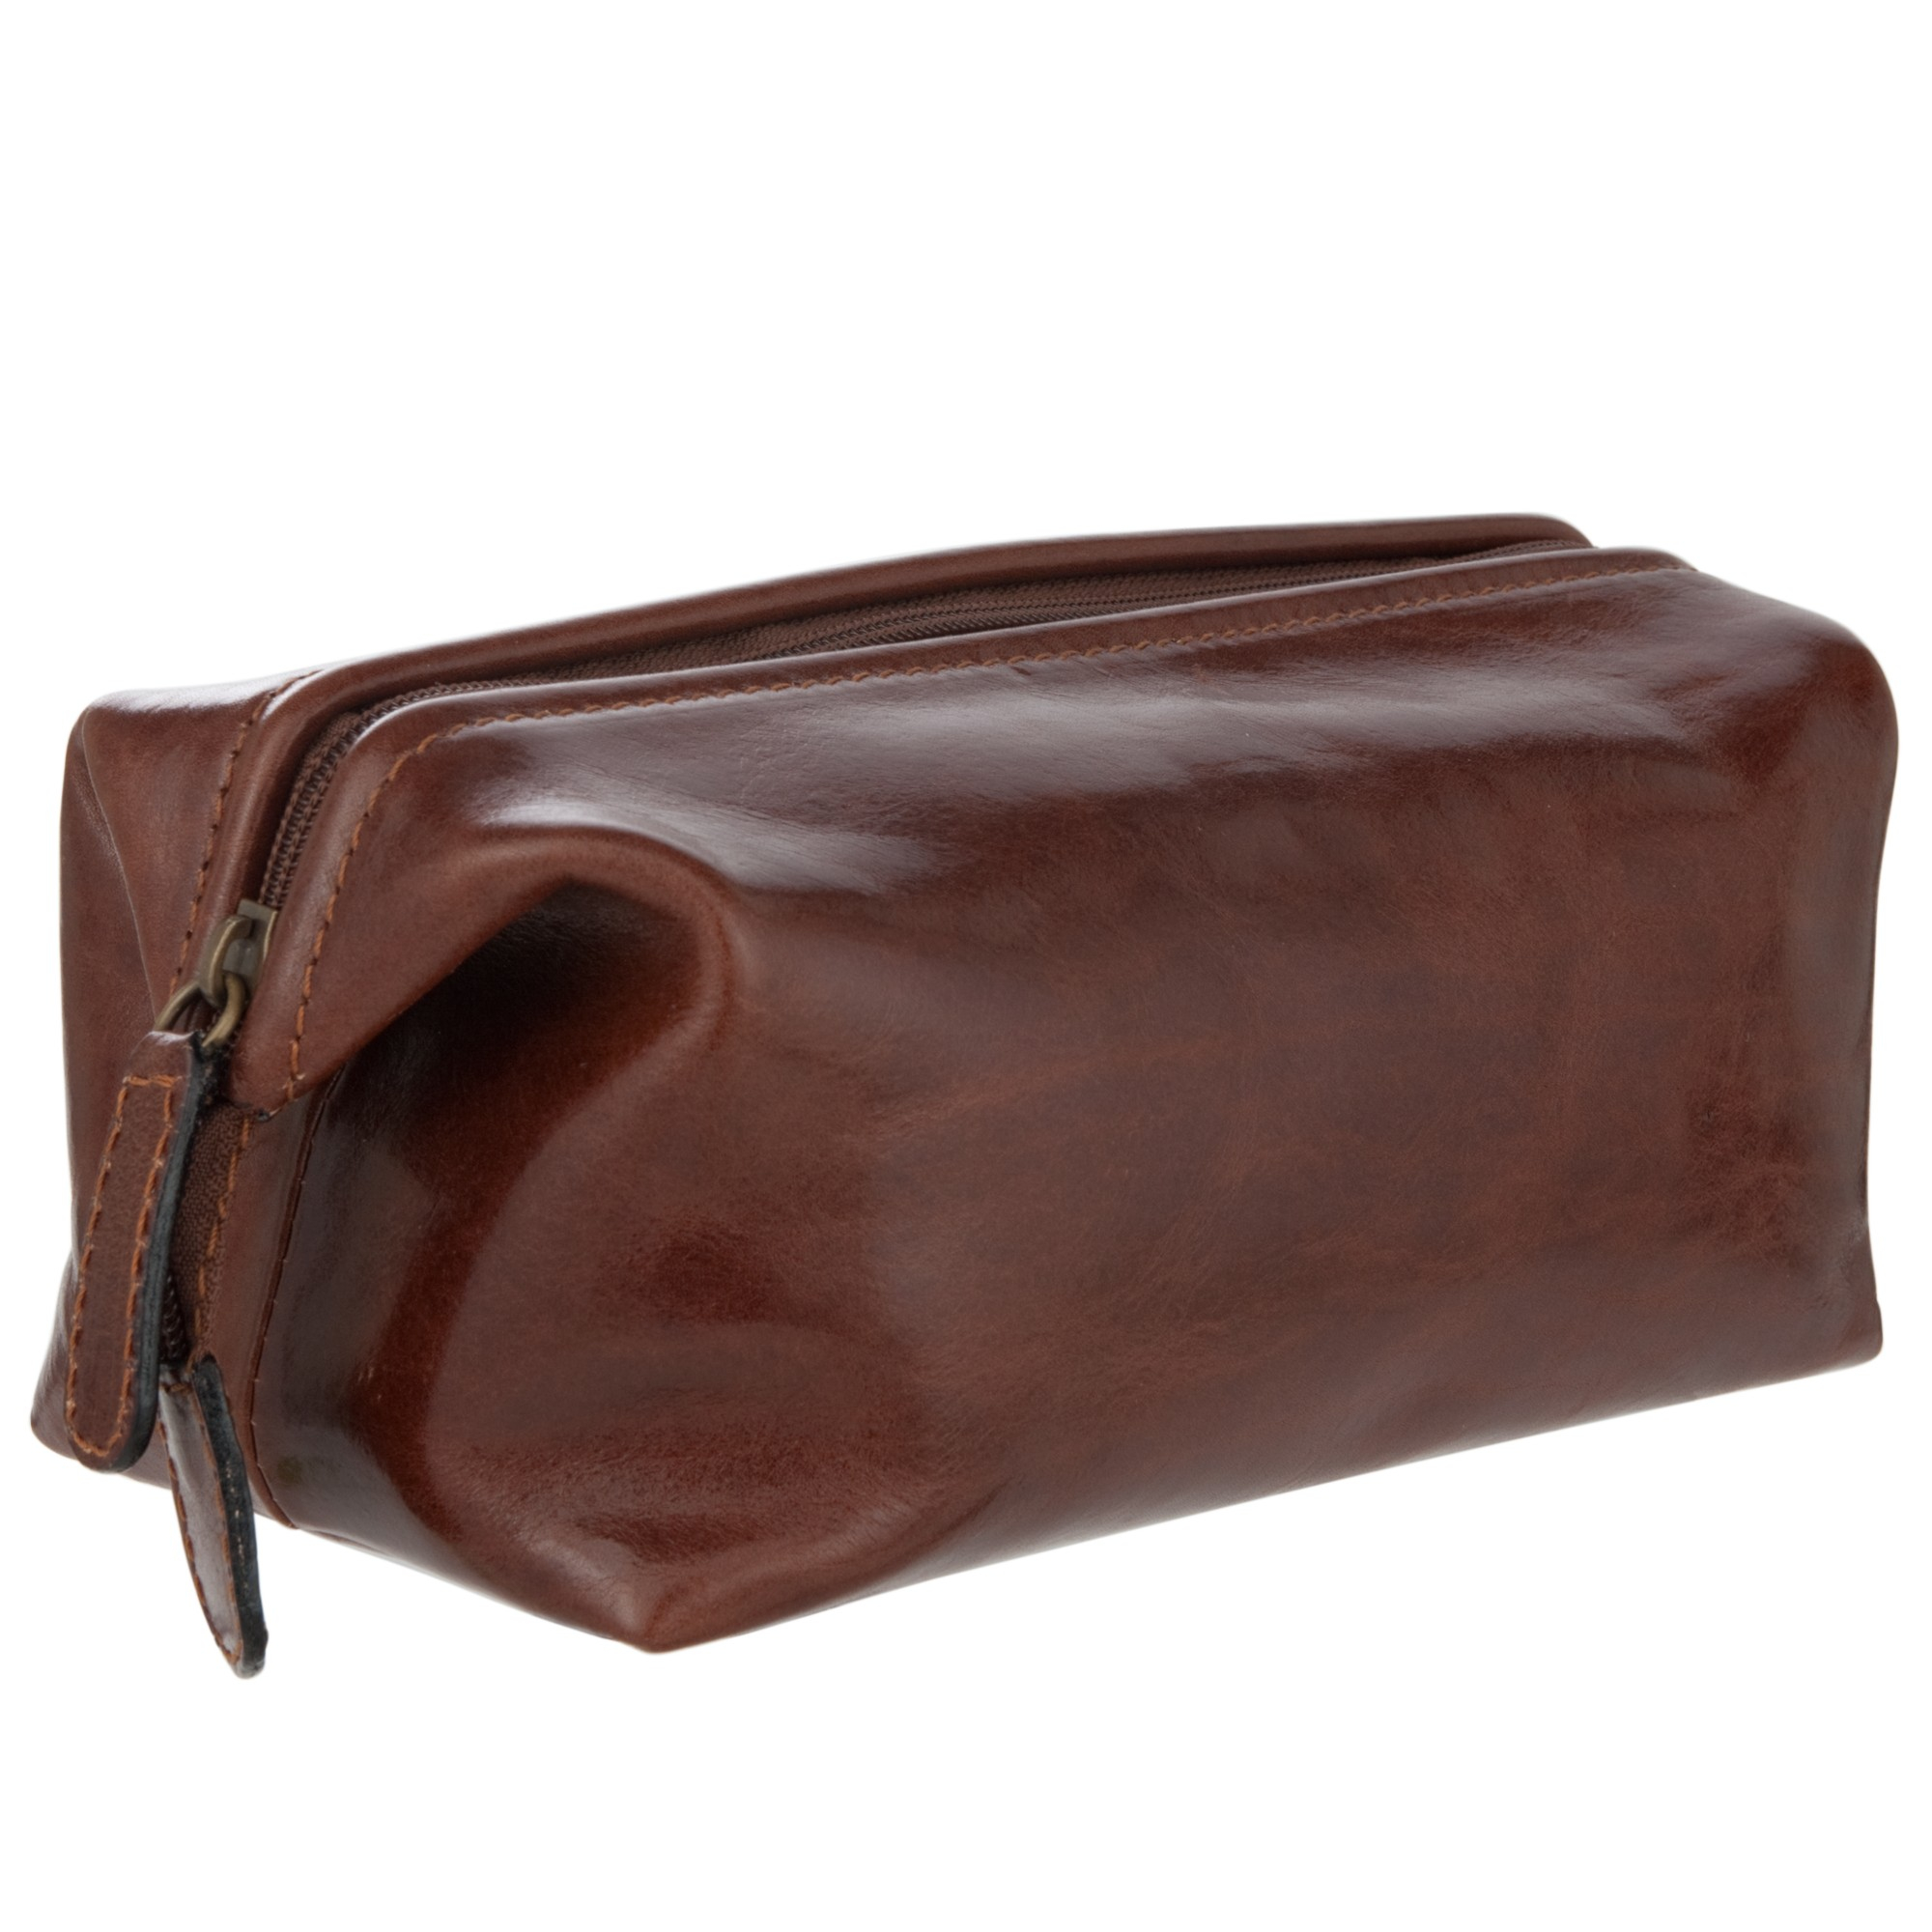 028f65fc743a0 John Lewis Made In Italy Leather Wash Bag in Brown for Men - Lyst